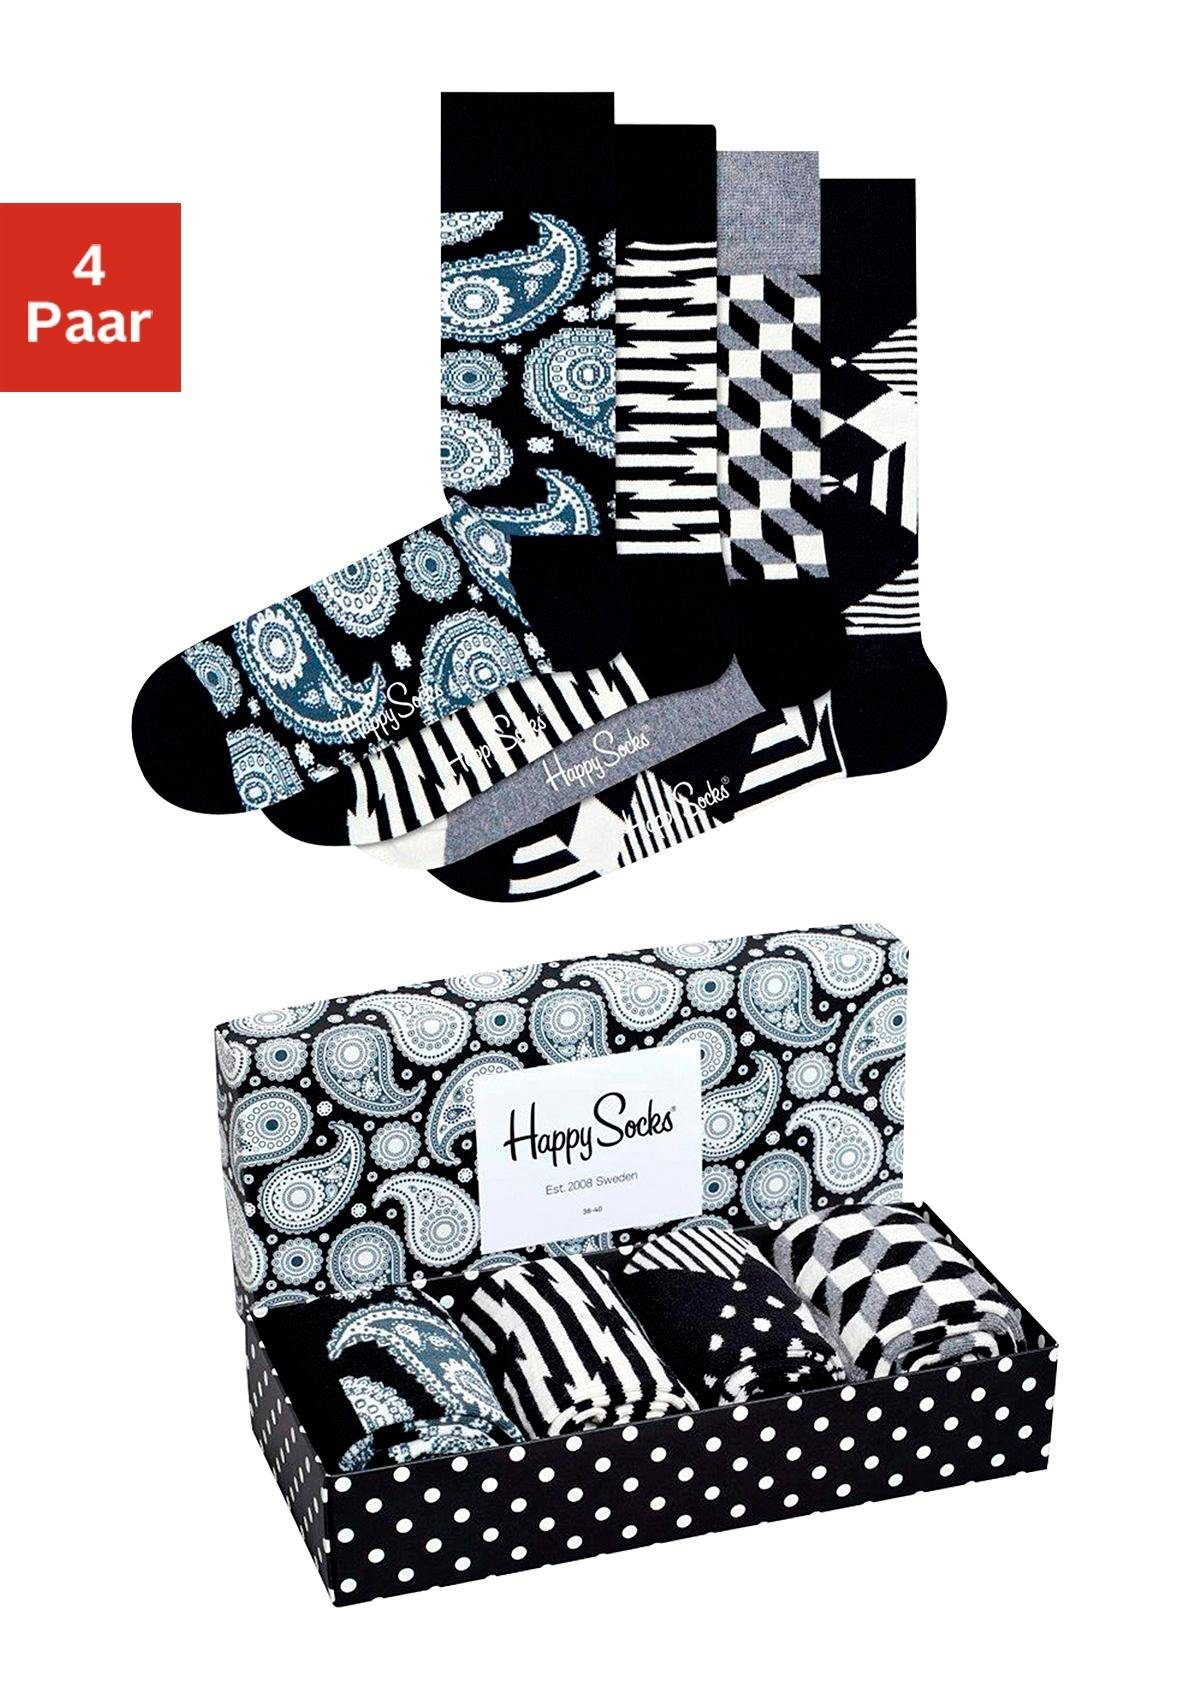 Happy Socks Modische Herrensocken (4 Paar) in der Geschenkbox